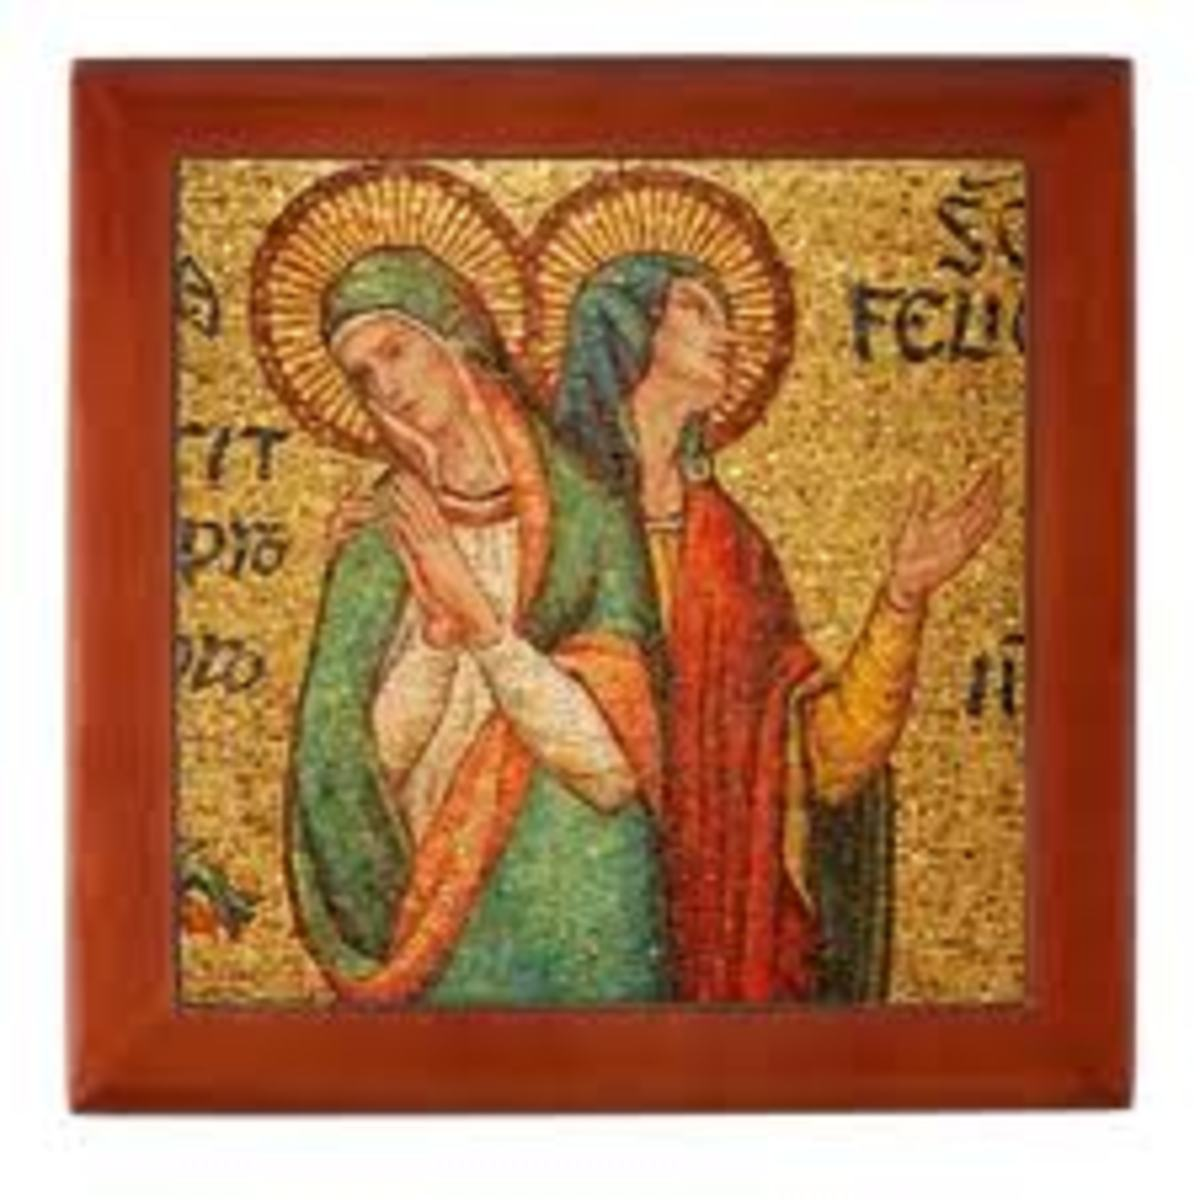 A Summary of the Passion of Saint Perpetua and Felicity